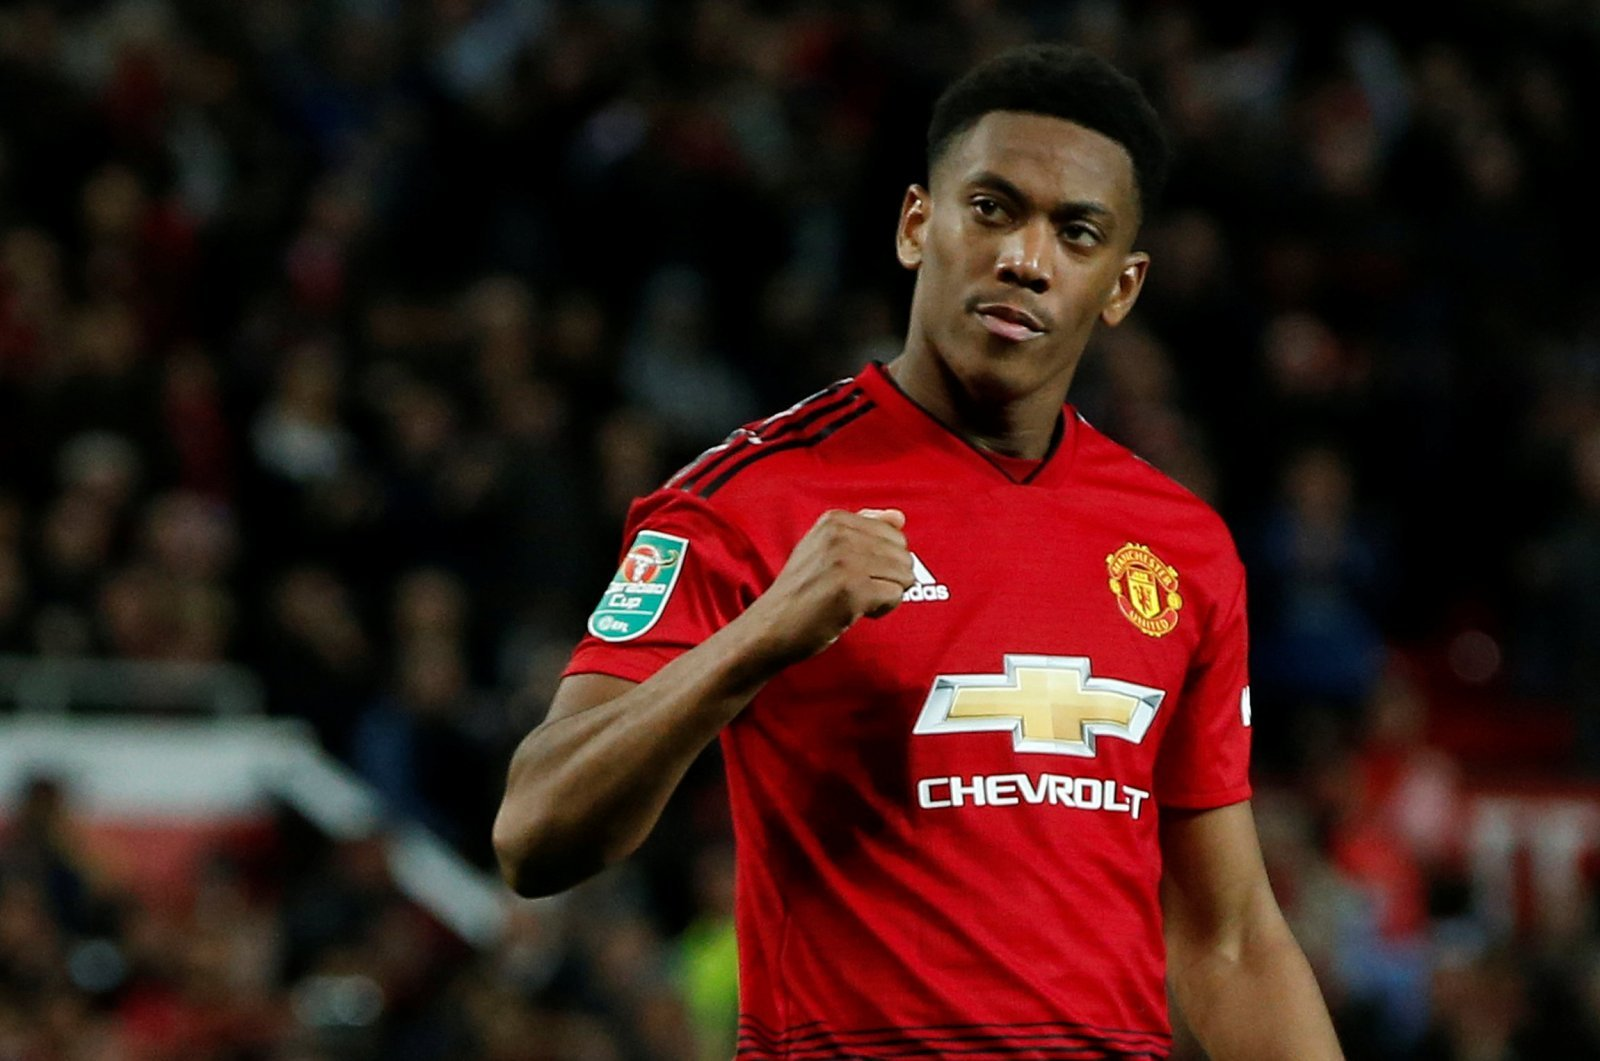 Surely it's now or never for Tottenham and Anthony Martial